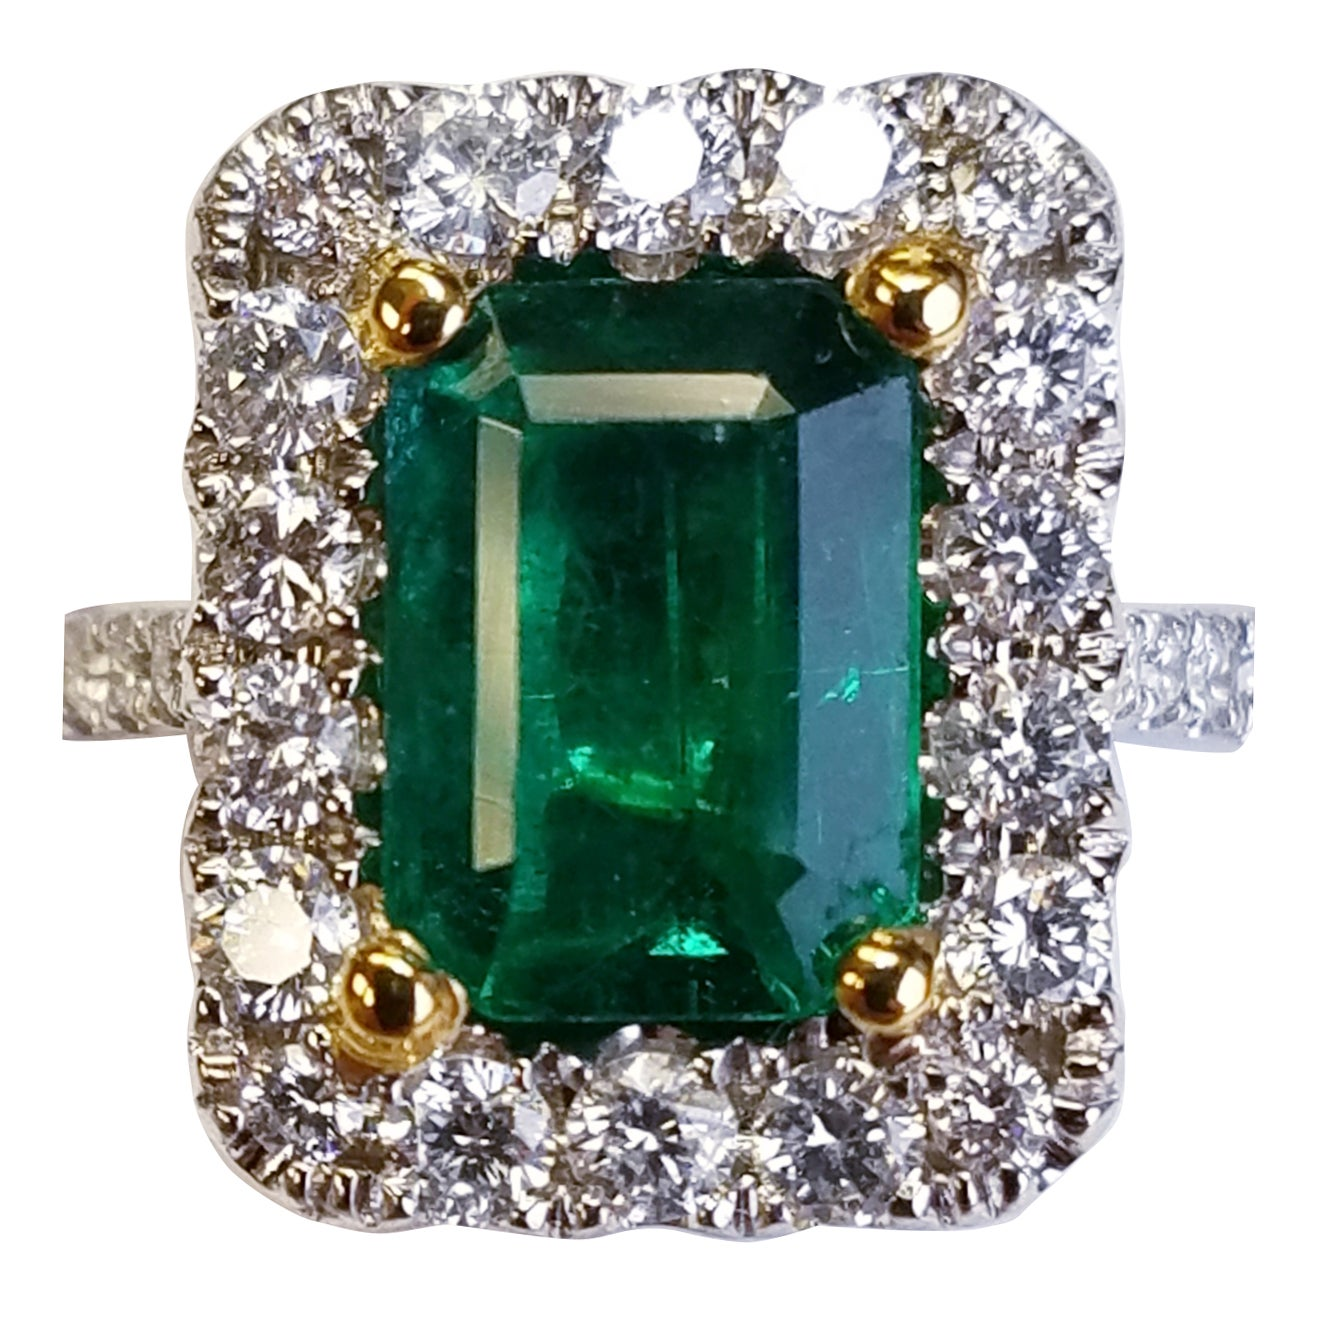 18 Karat White Gold Emerald Cut Emerald and Diamond Ring